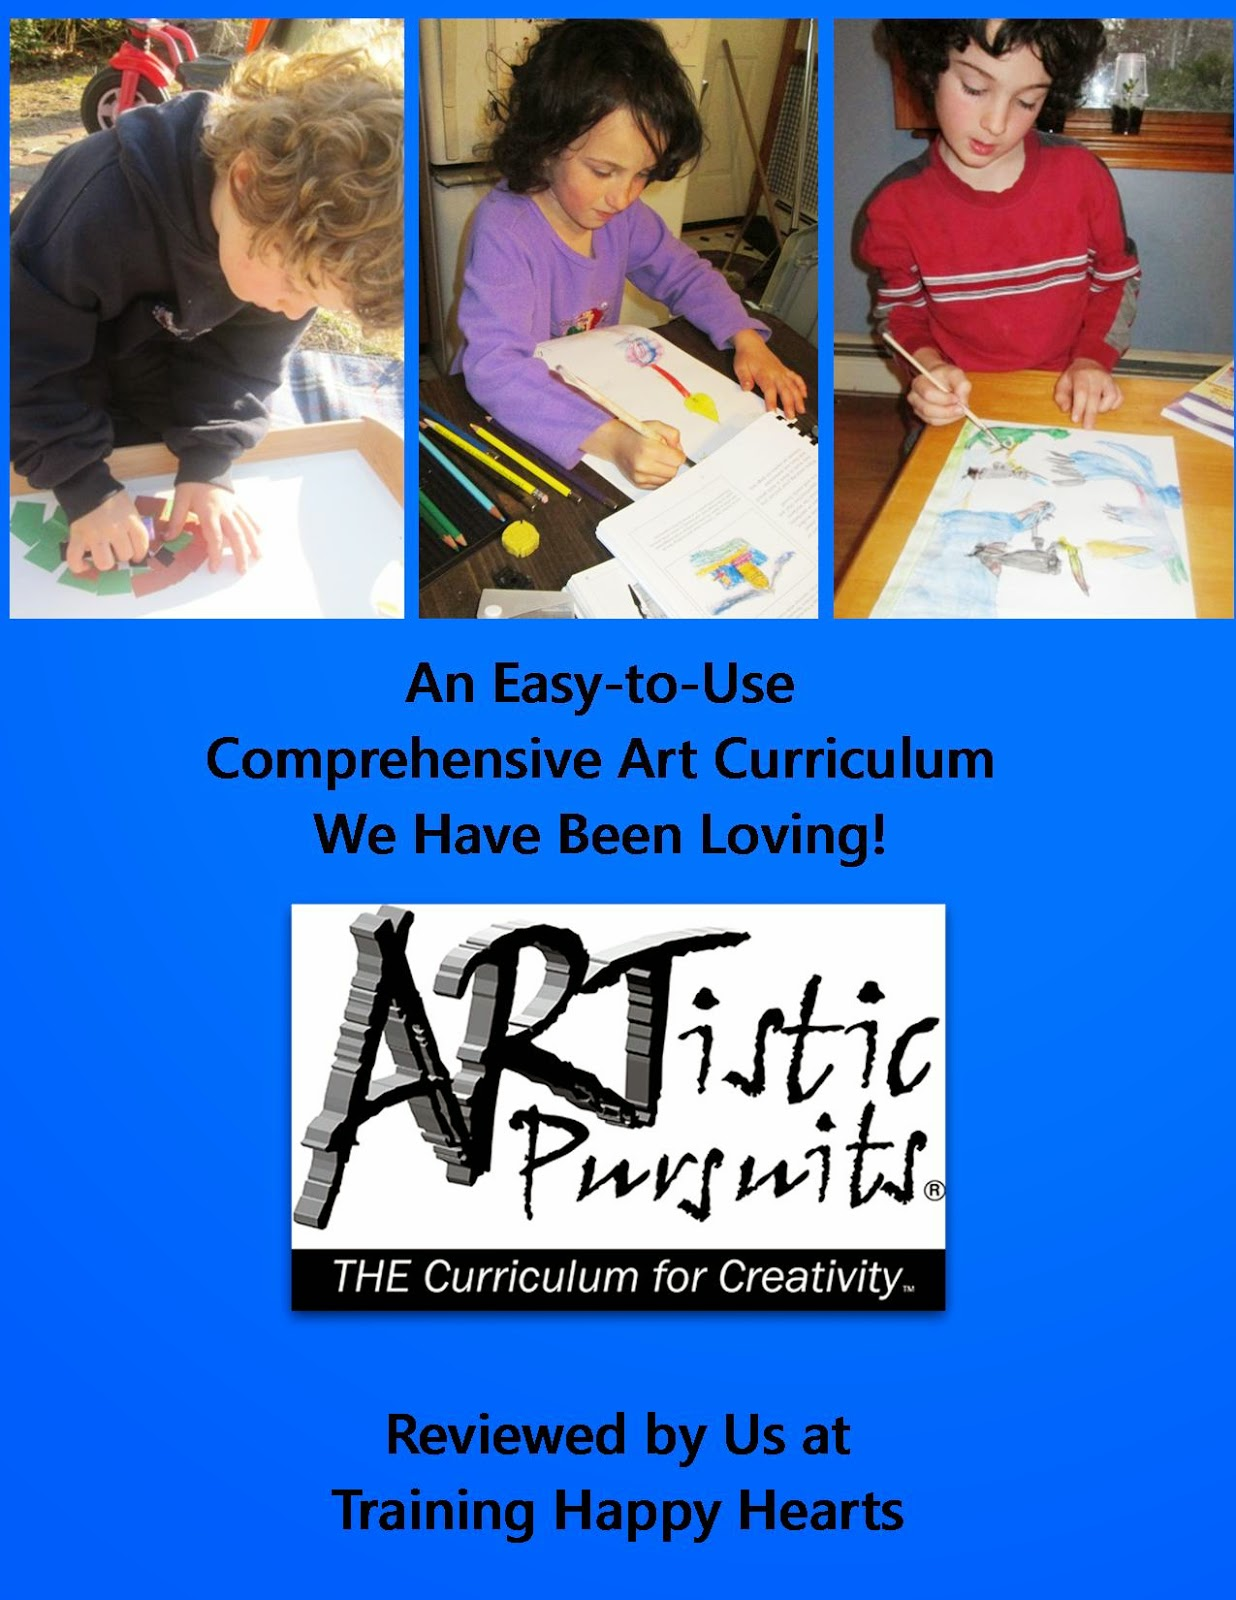 http://traininghappyhearts.blogspot.com.au/2014/04/an-open-and-go-art-curriculum-were.html